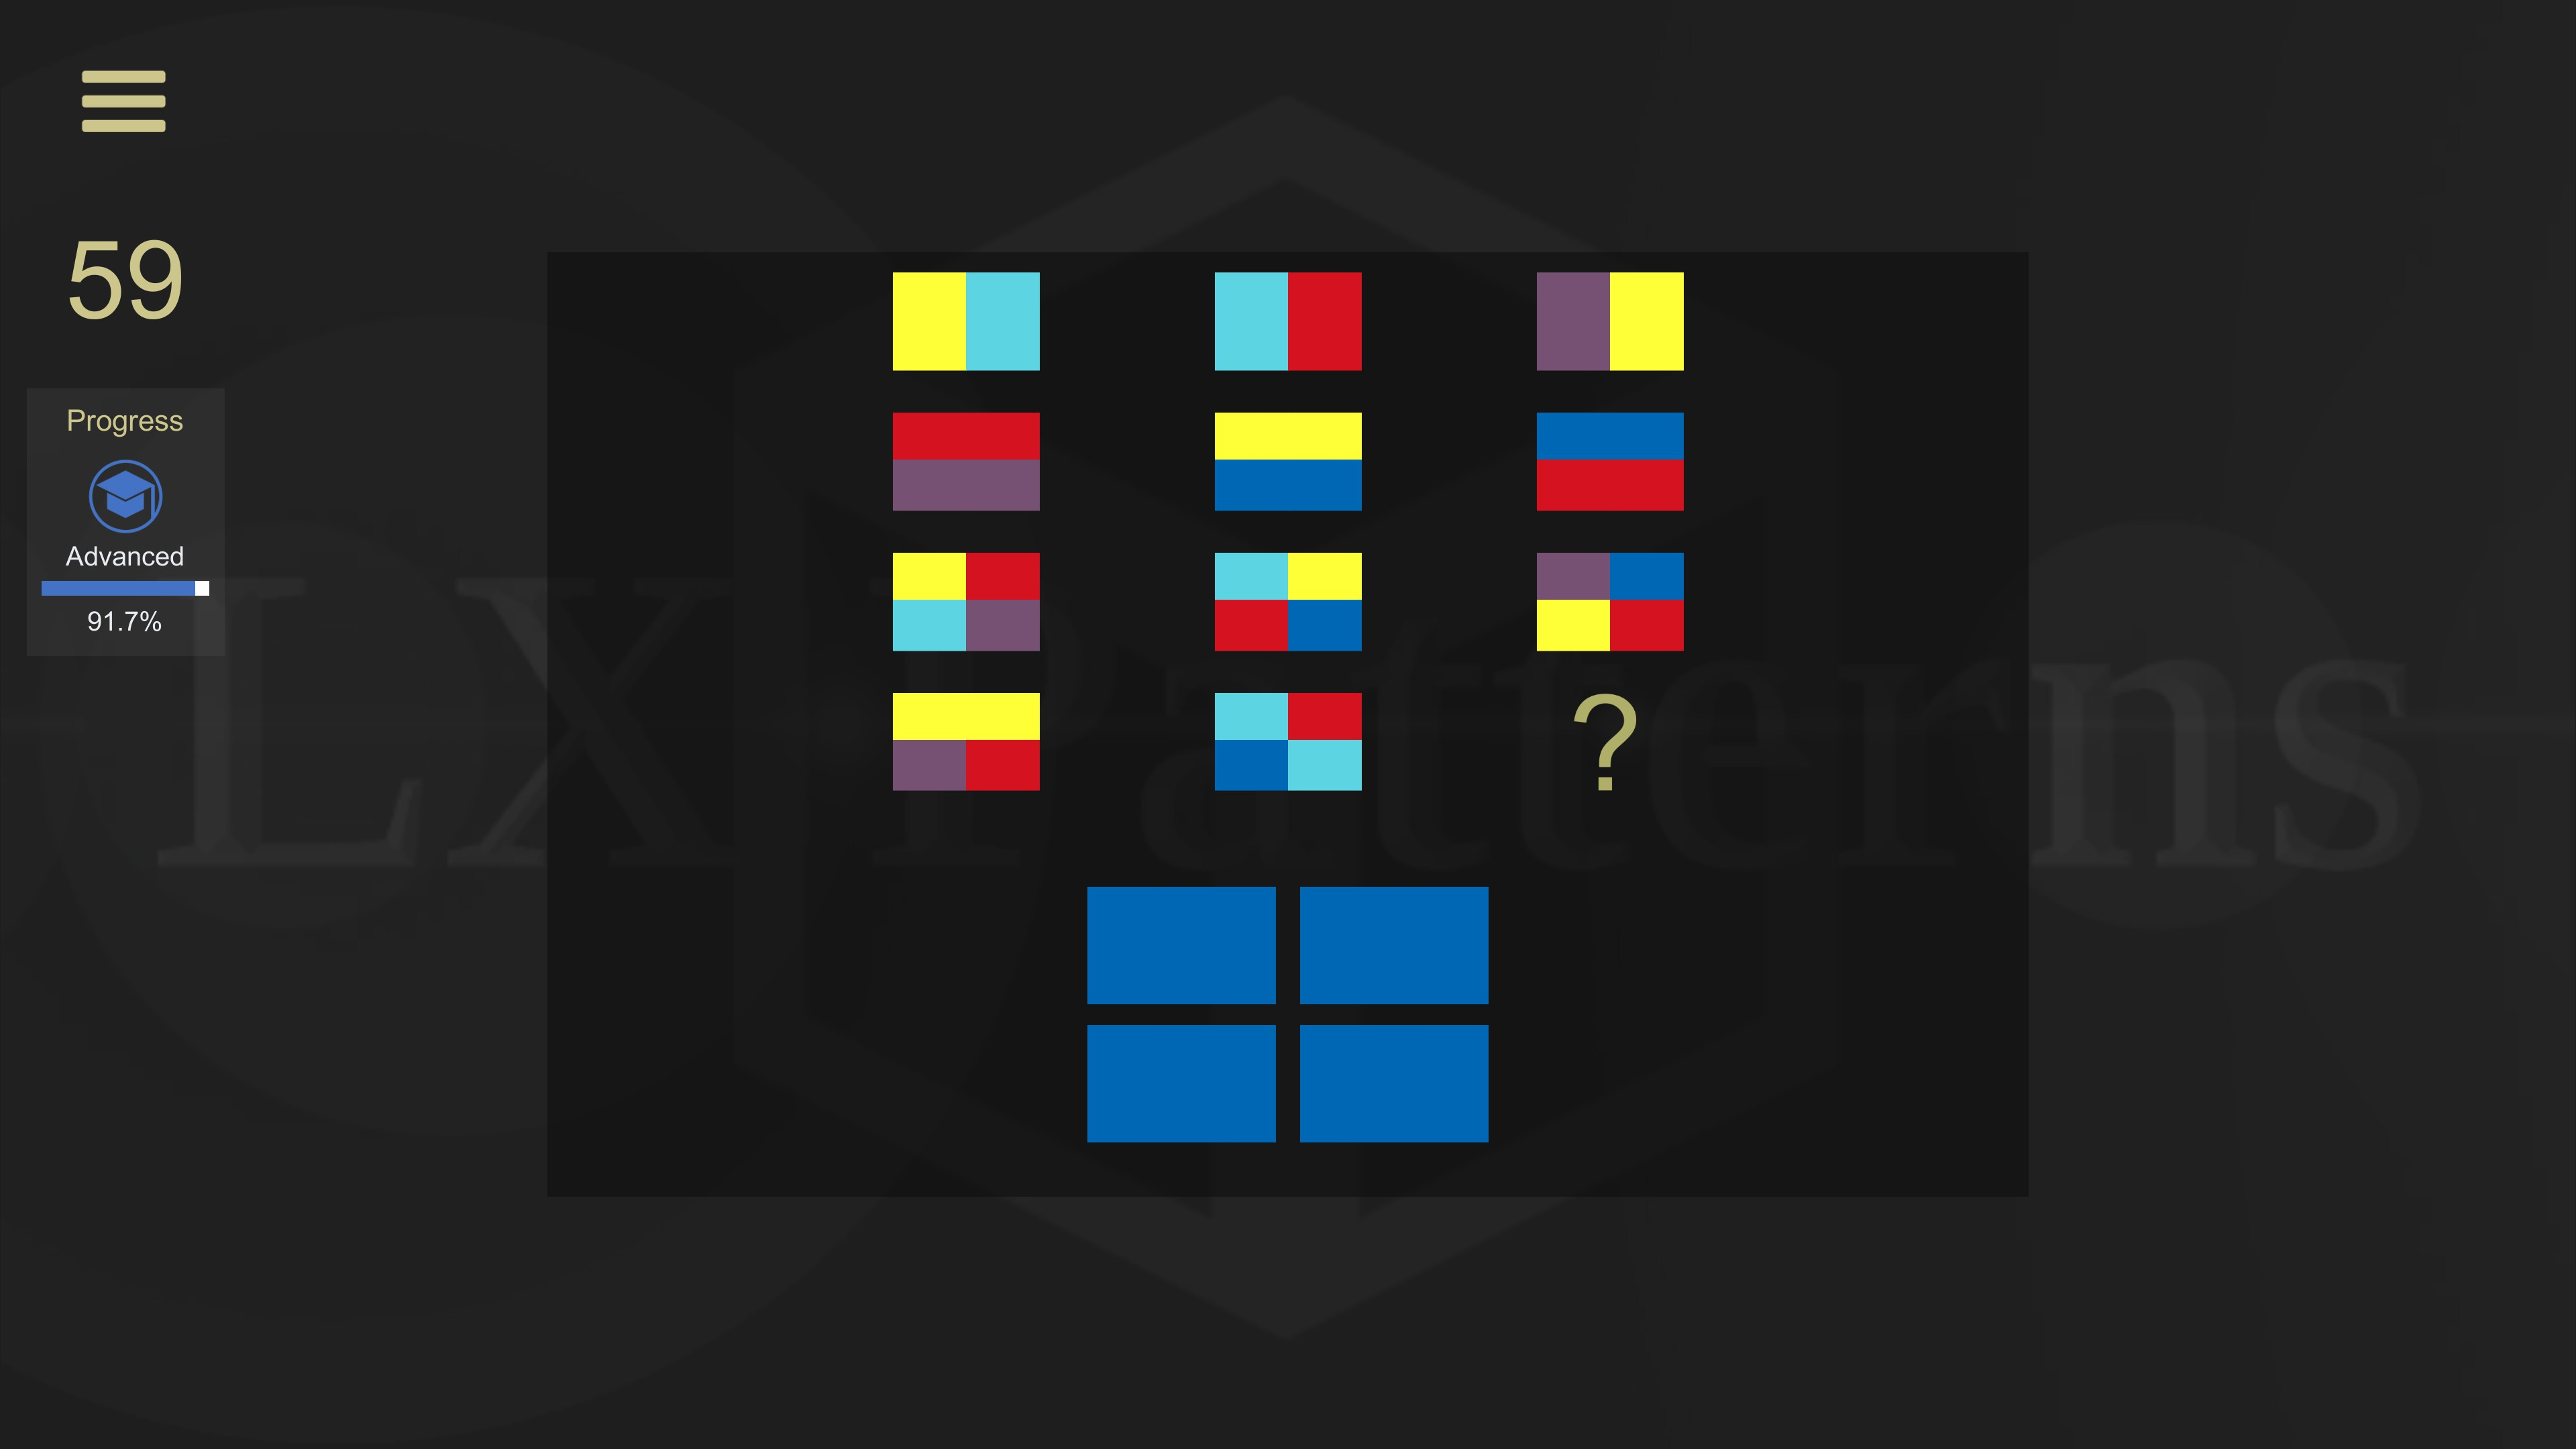 LX Patterns. Level 59 advanced puzzle. 11 colored flags are shown, the player must provide what the 12th flag would be.